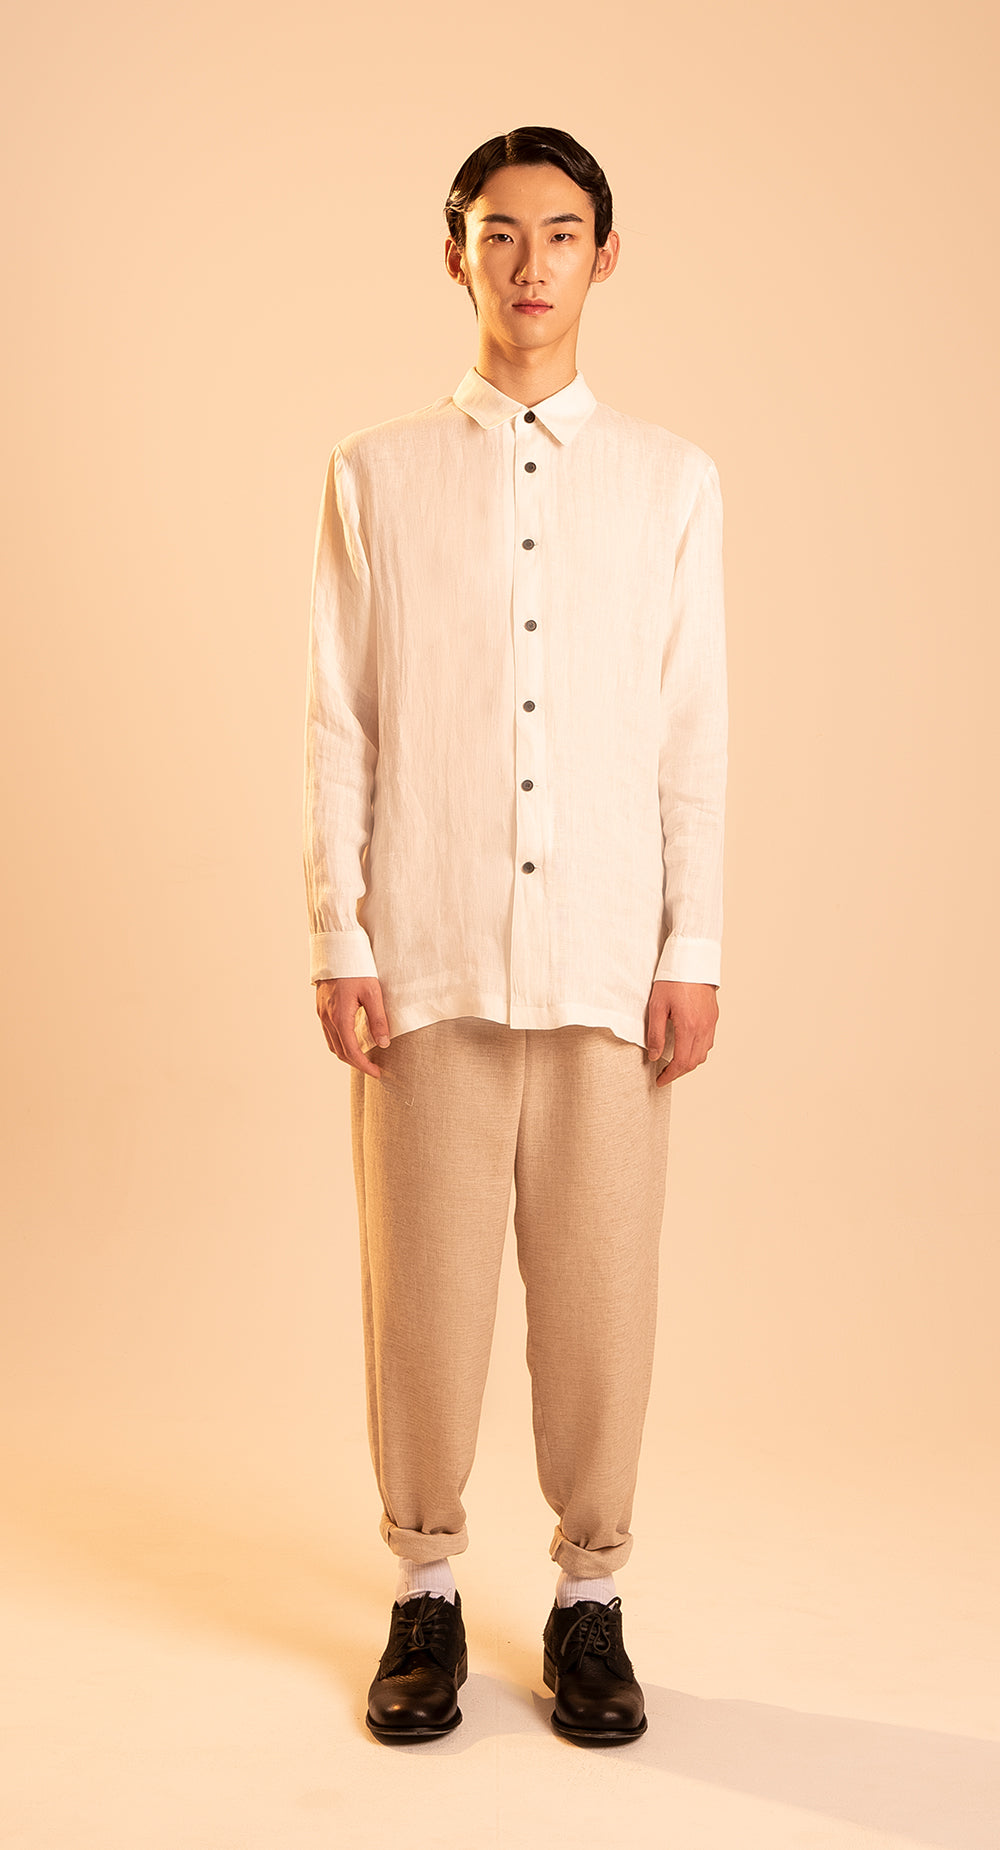 Regular Box Fit Linen Shirt IV